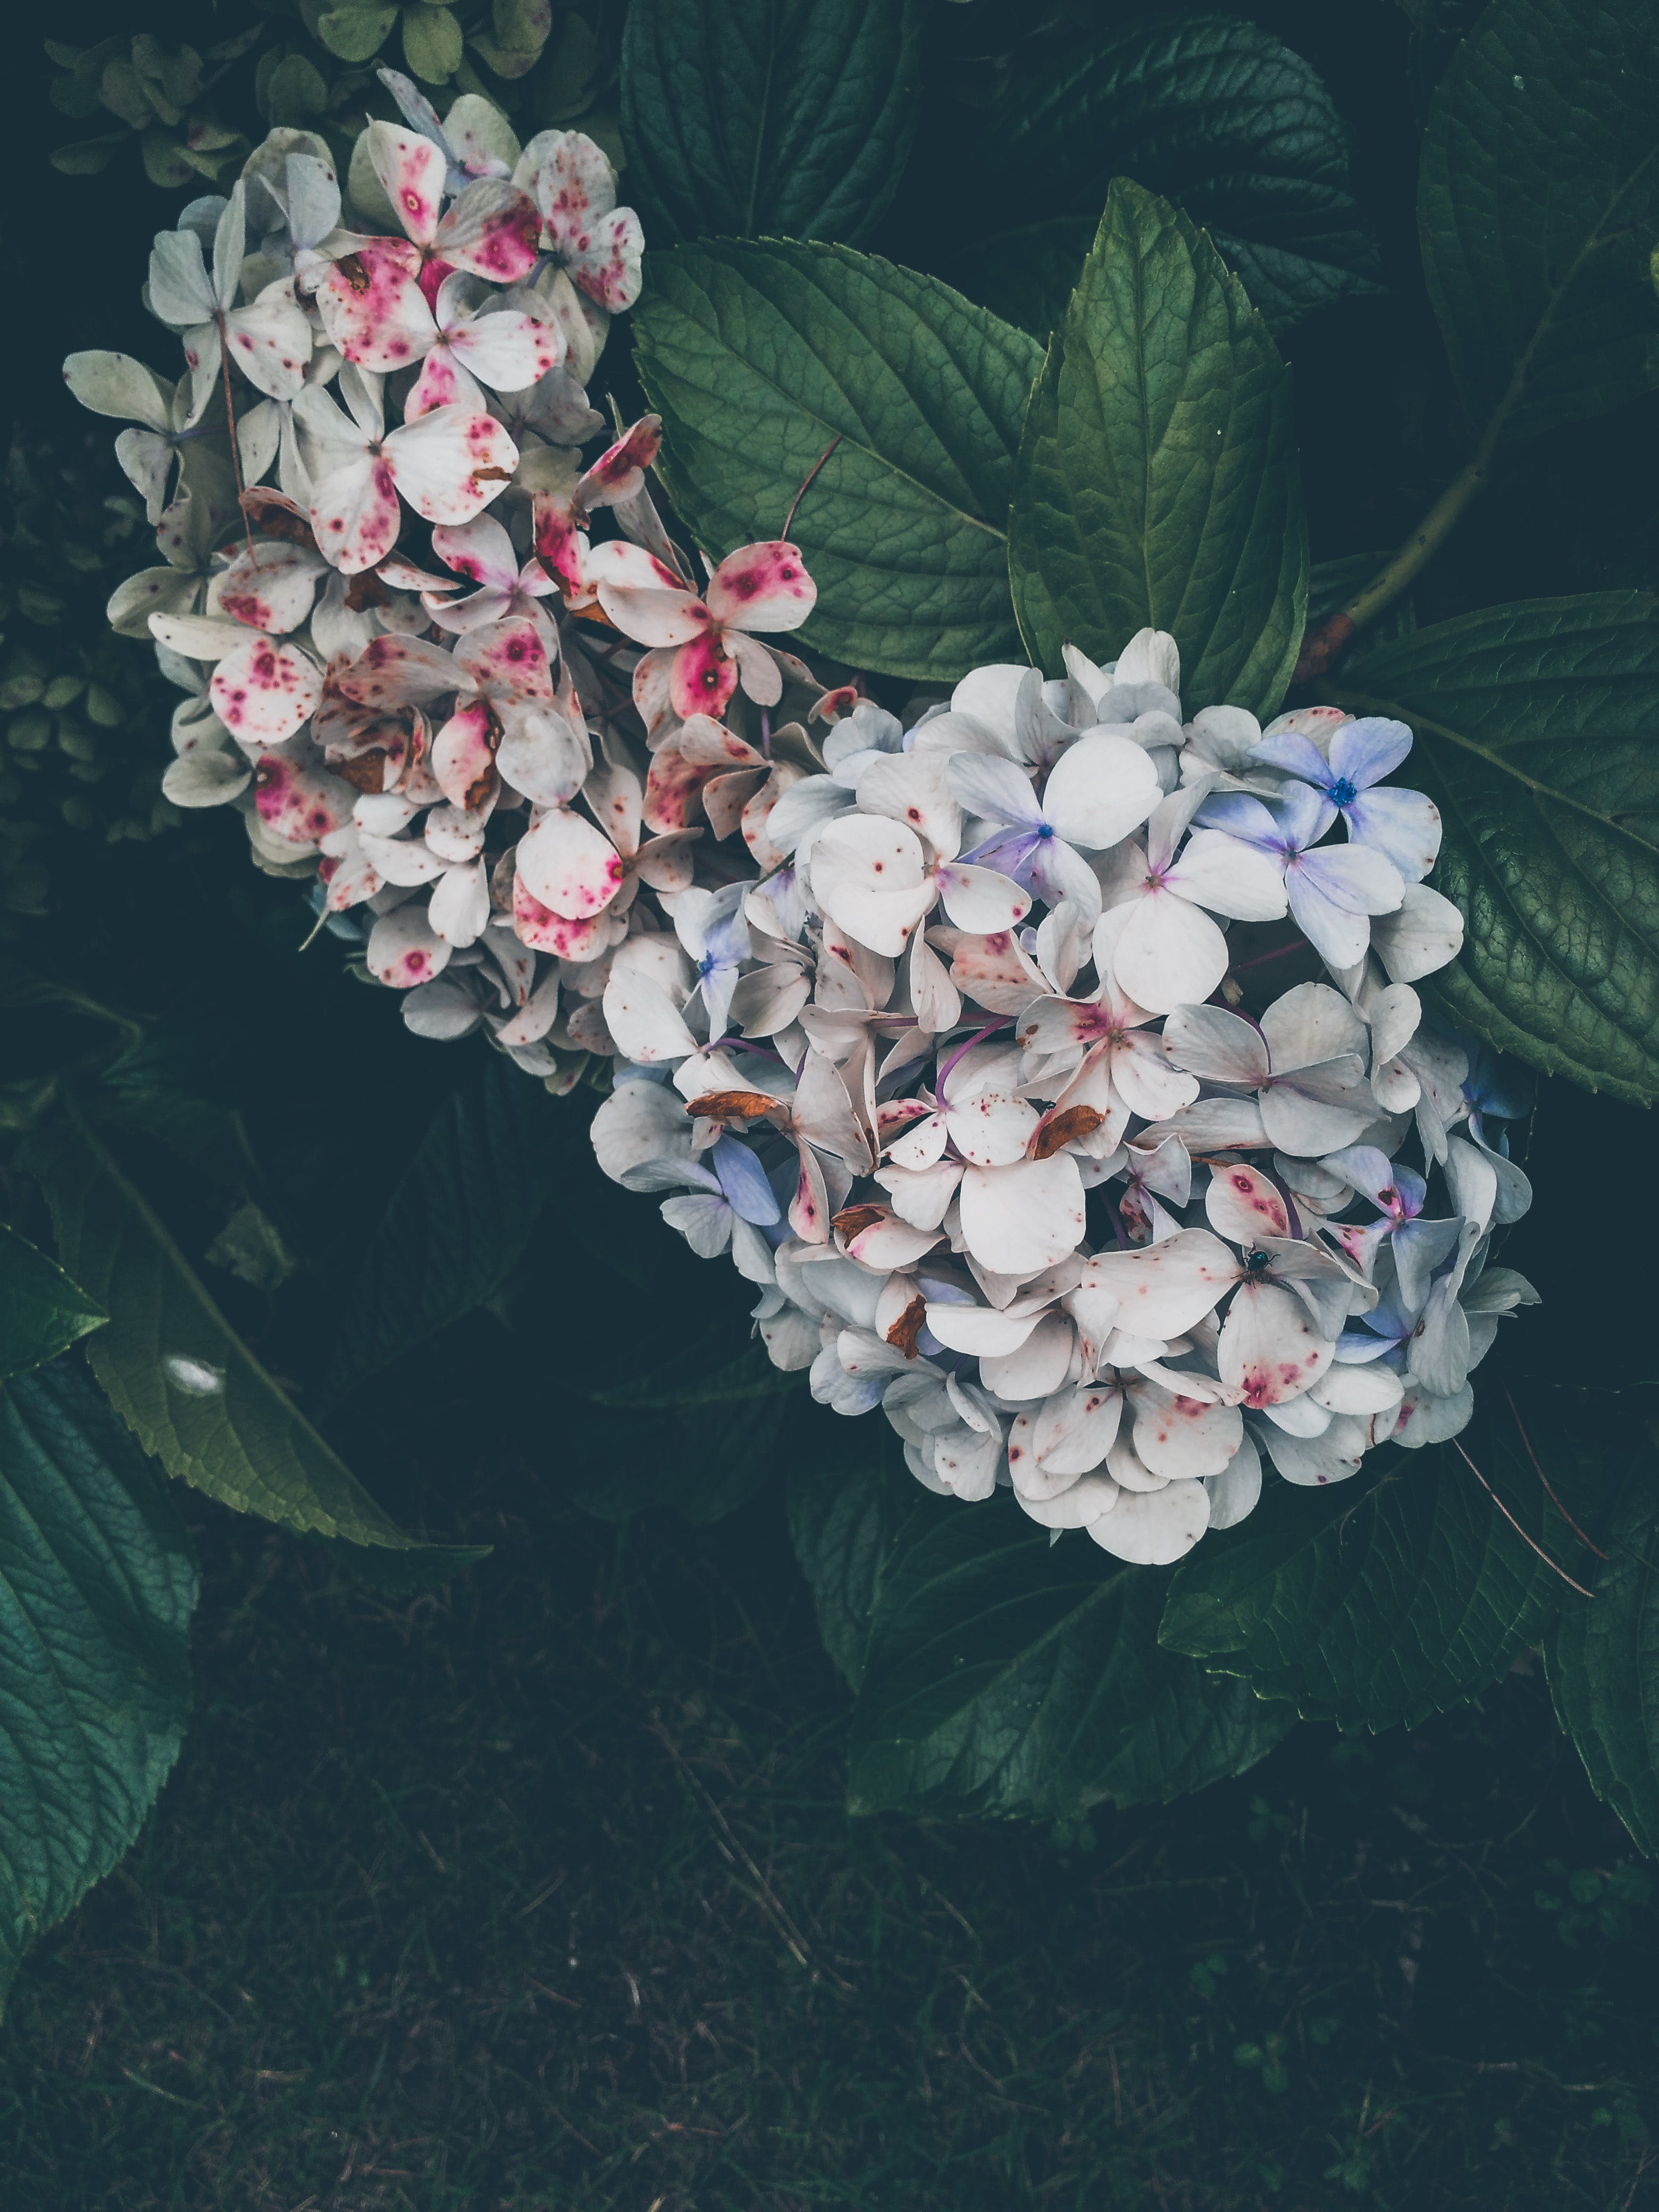 Free stock photo of 4k wallpaper, abstract photo, Adobe Photoshop, beautiful flower